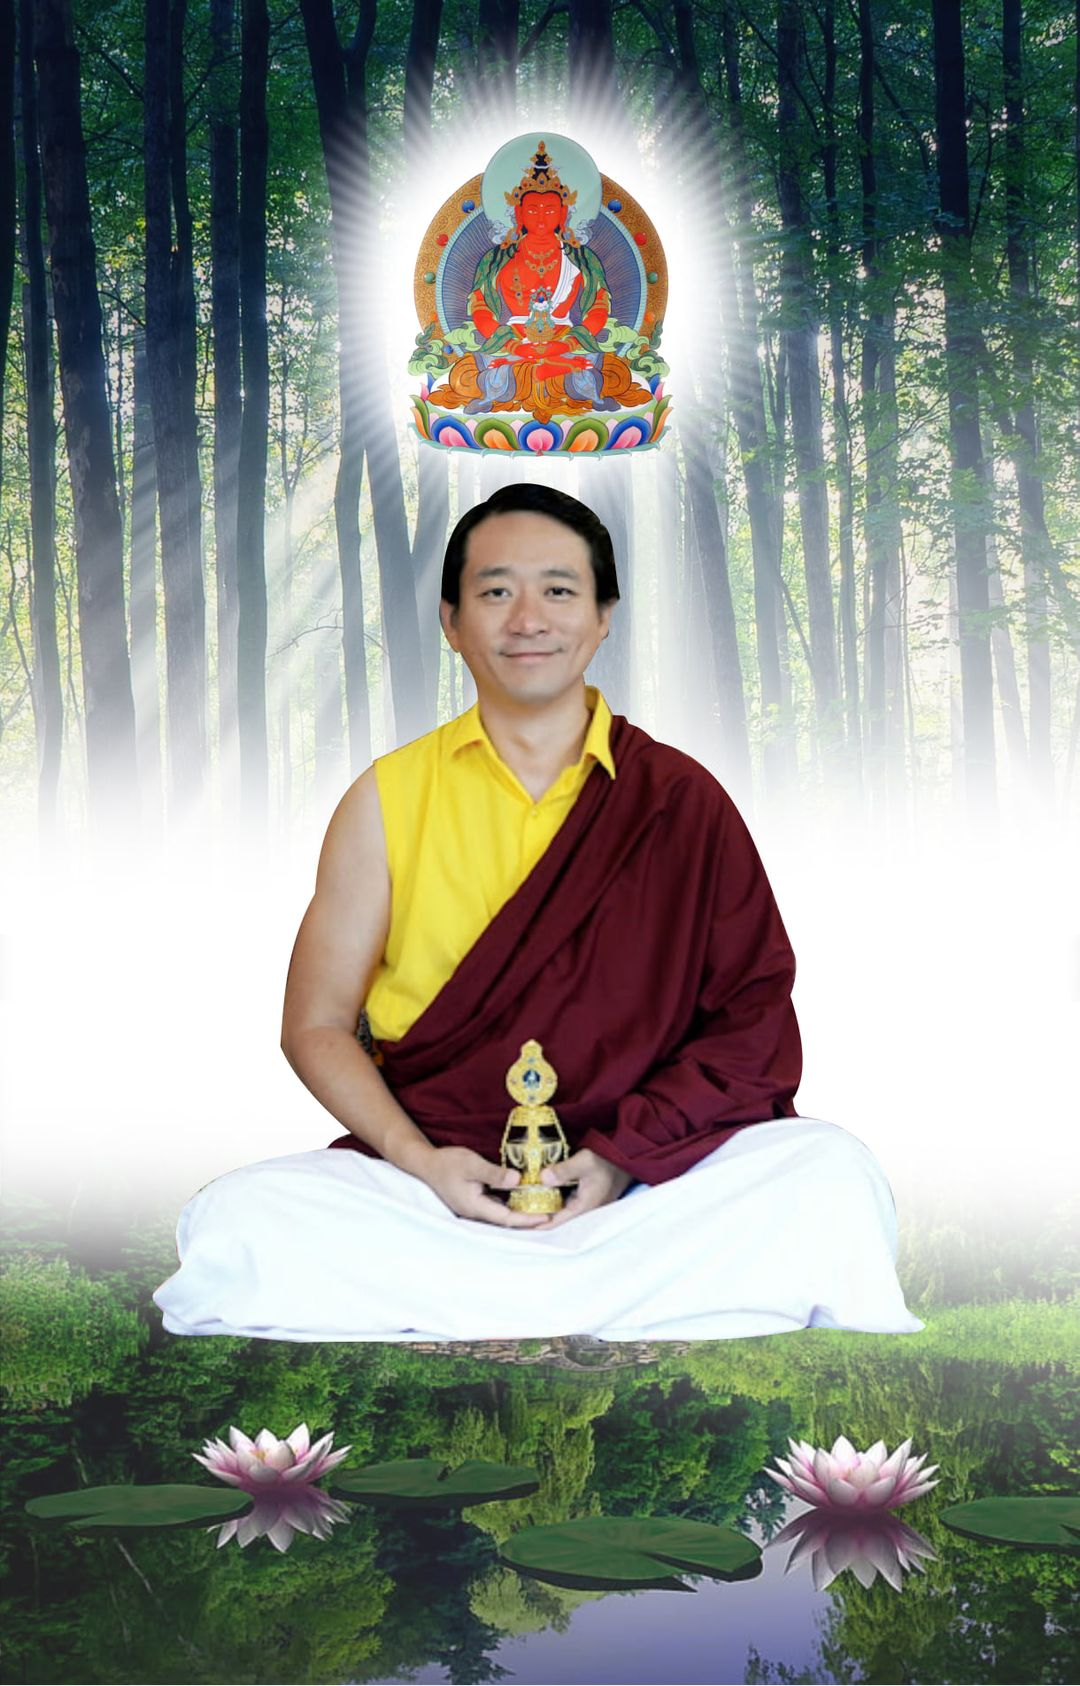 SPAIN - Teachings and transmissions with H. E. Gyana Vajra Rinpoche